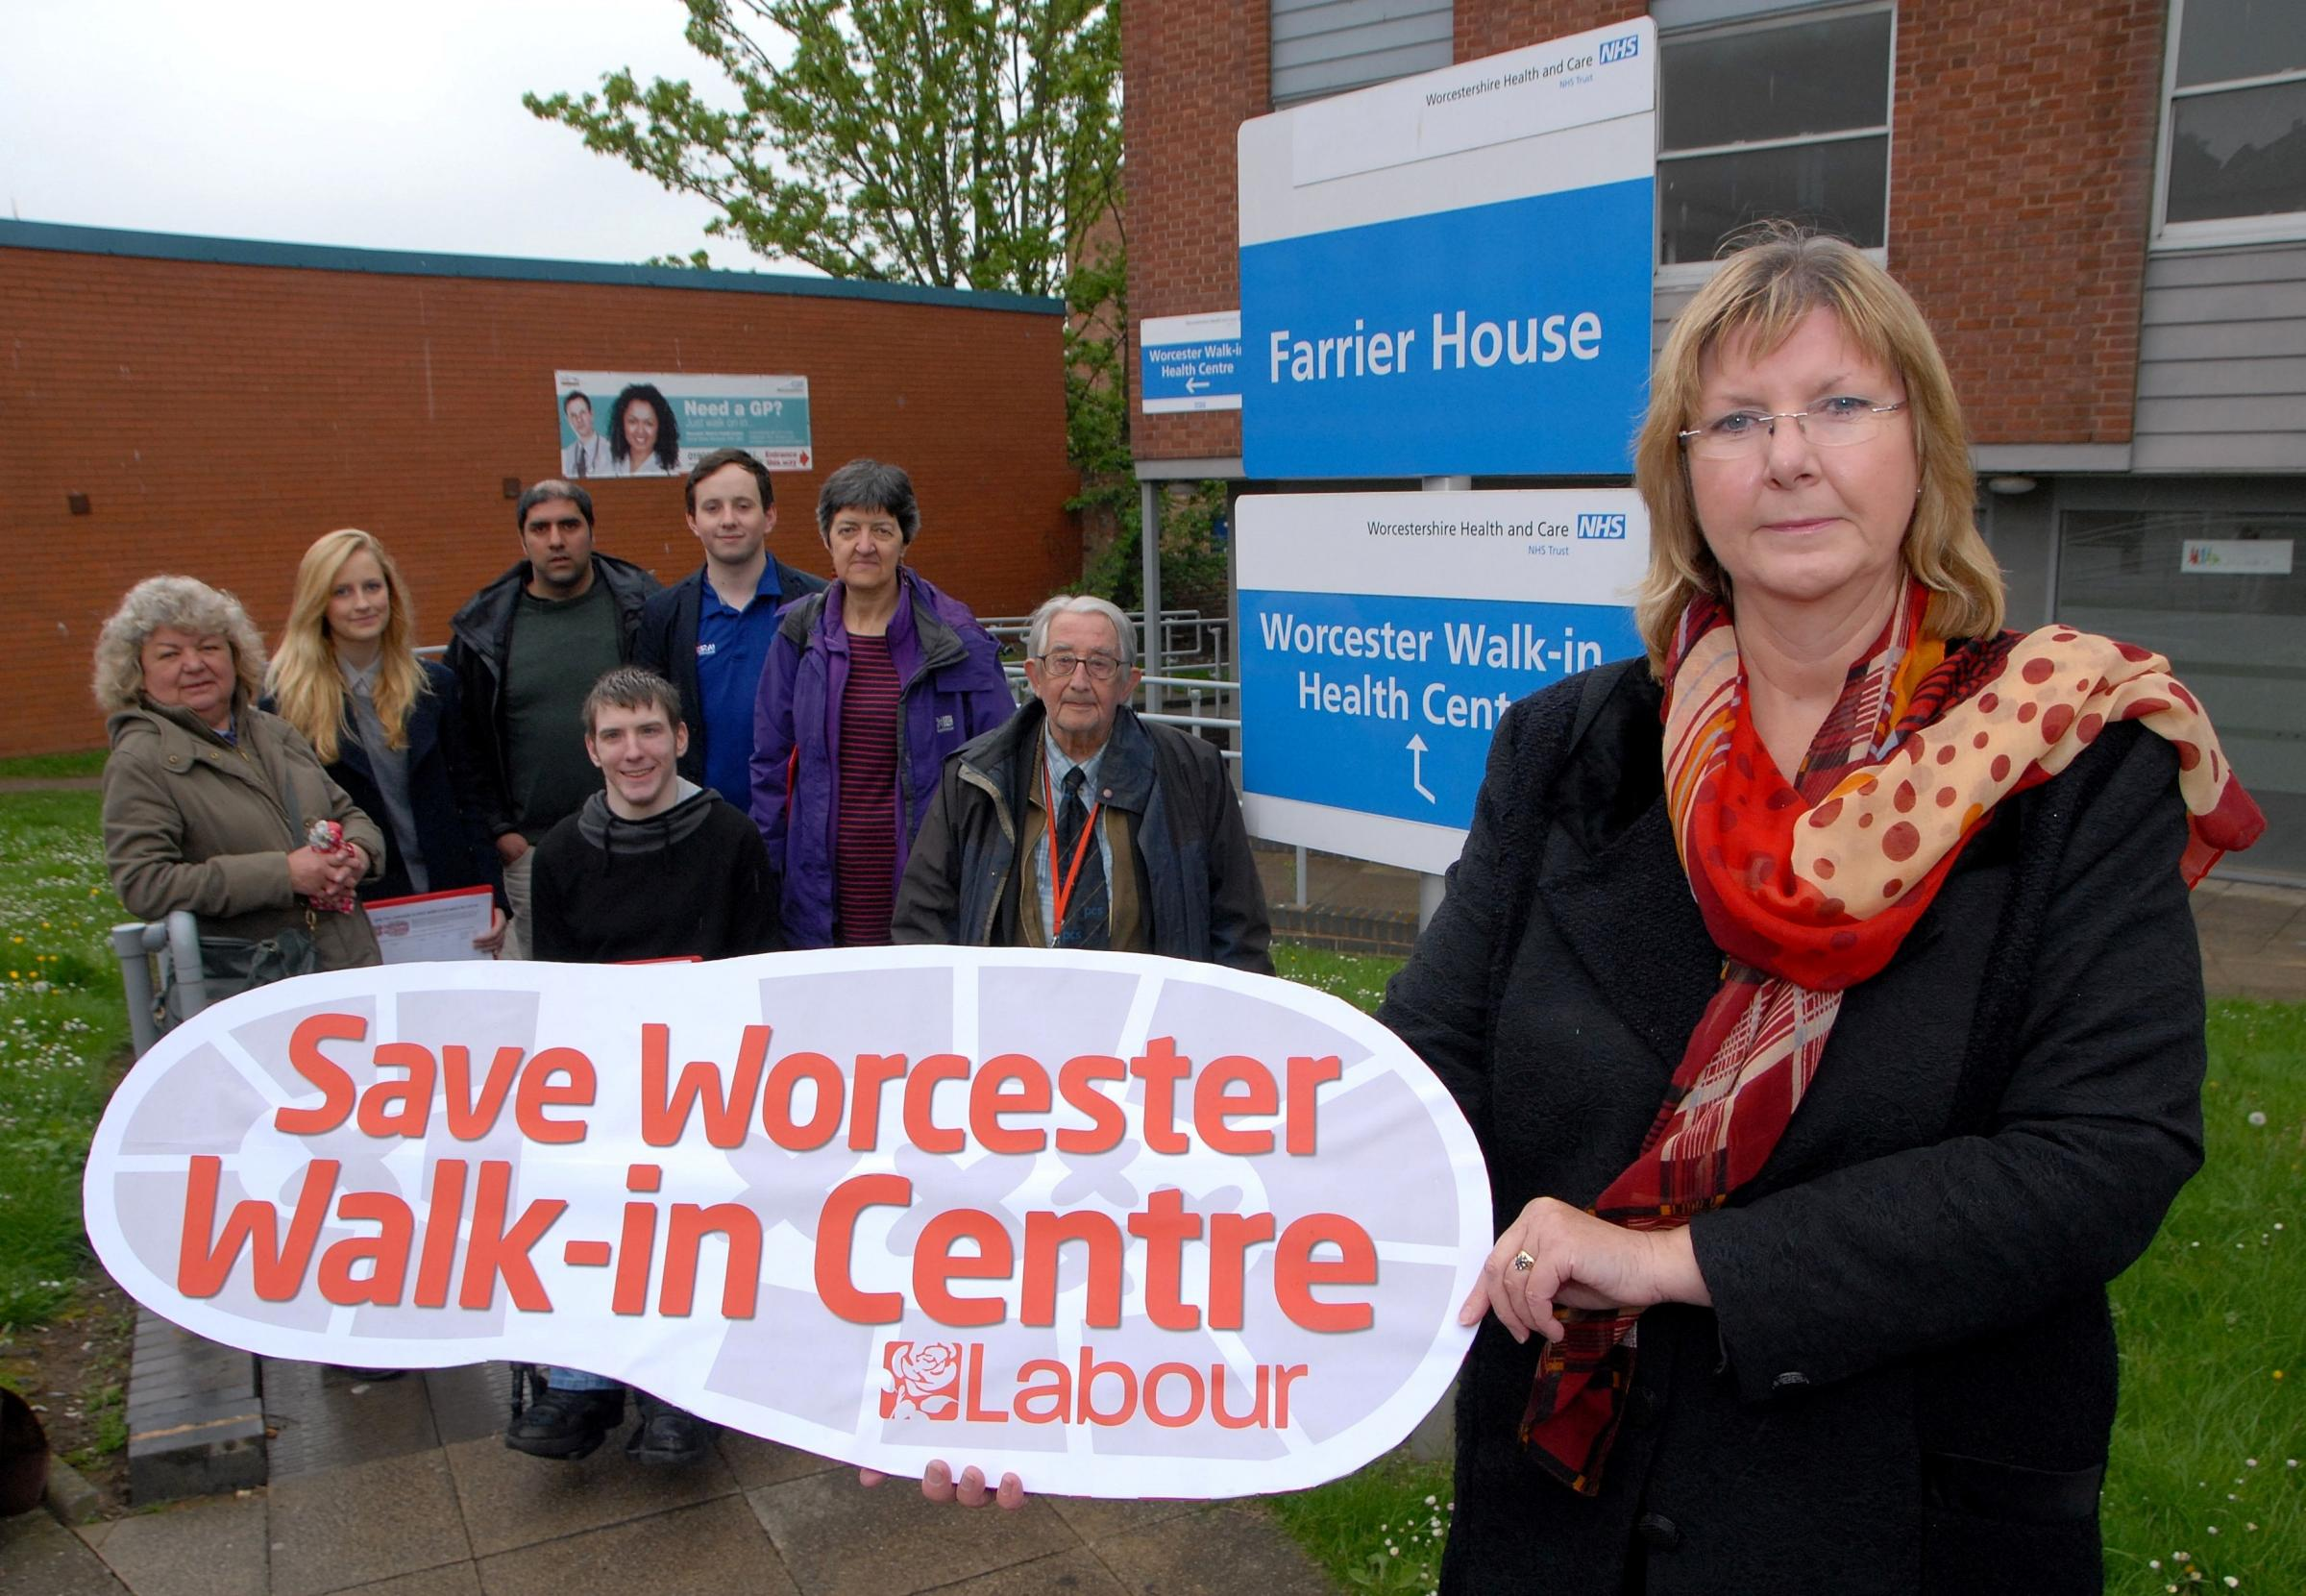 Campaign to save Worcester walk-in centre launched